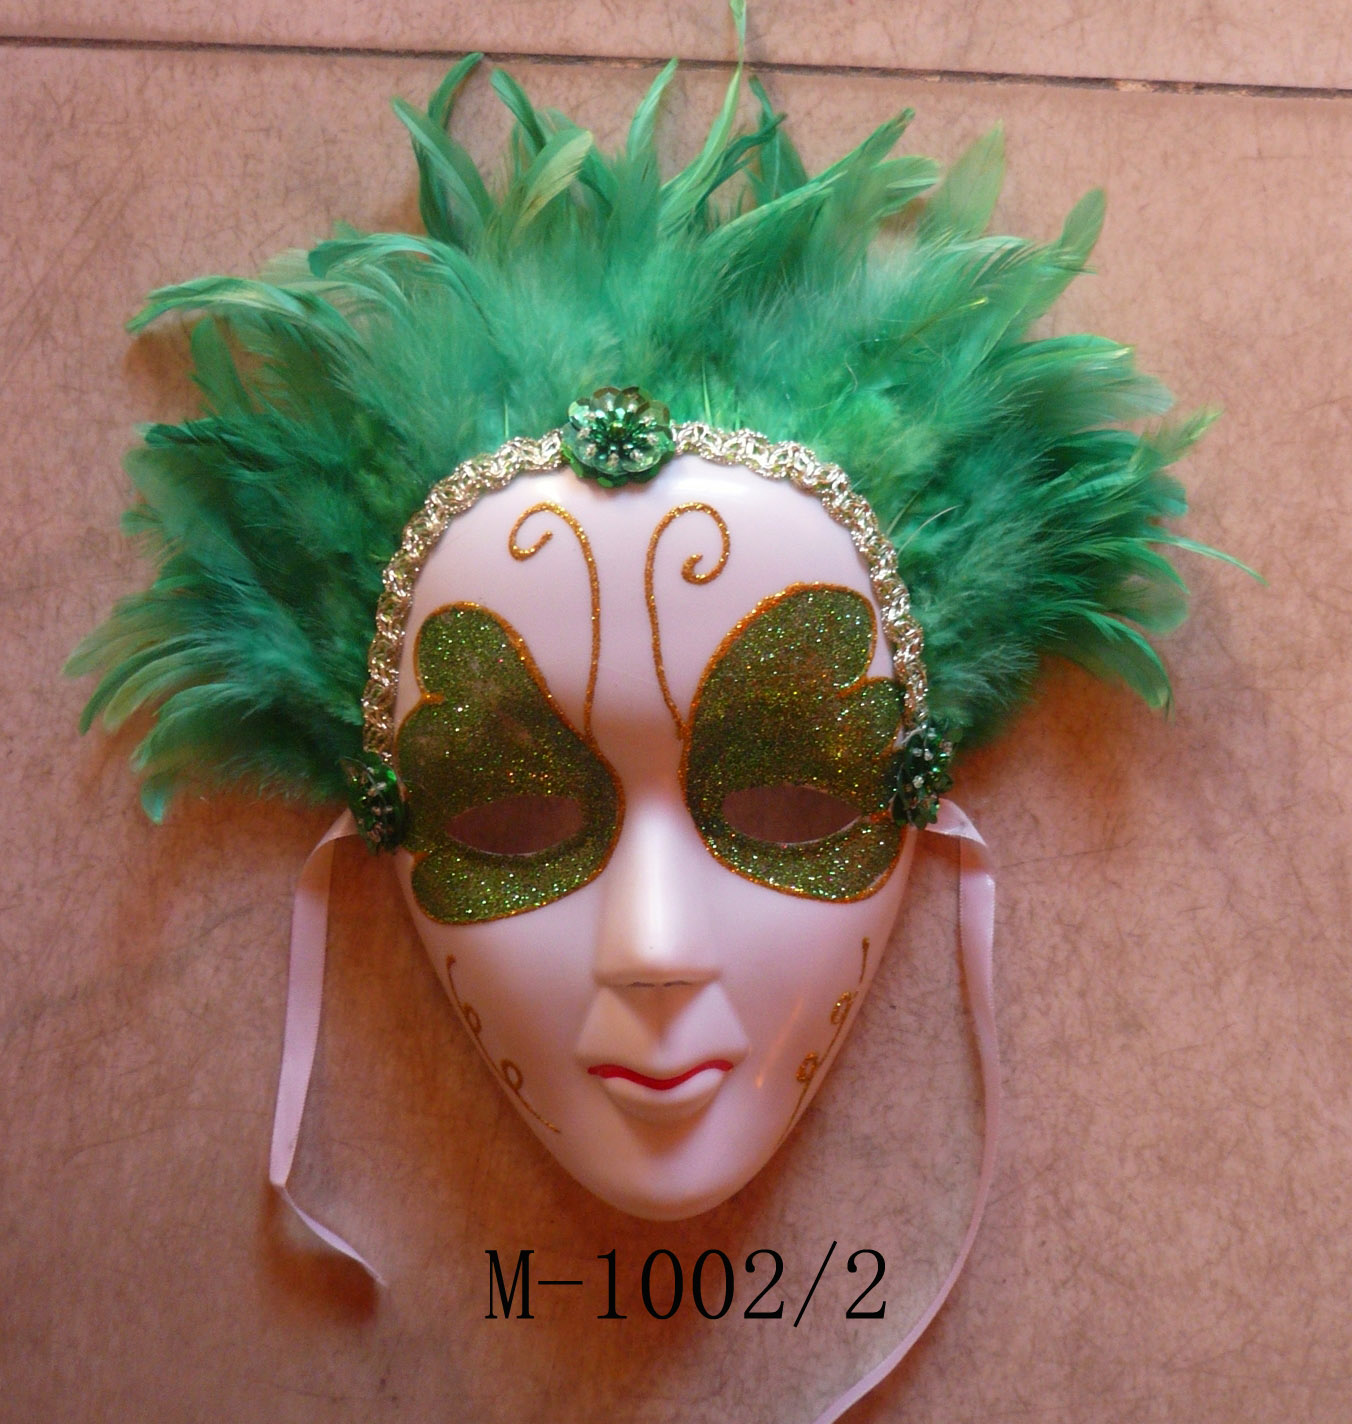 Cheap feather masks for sale - Made in China M-1002/2